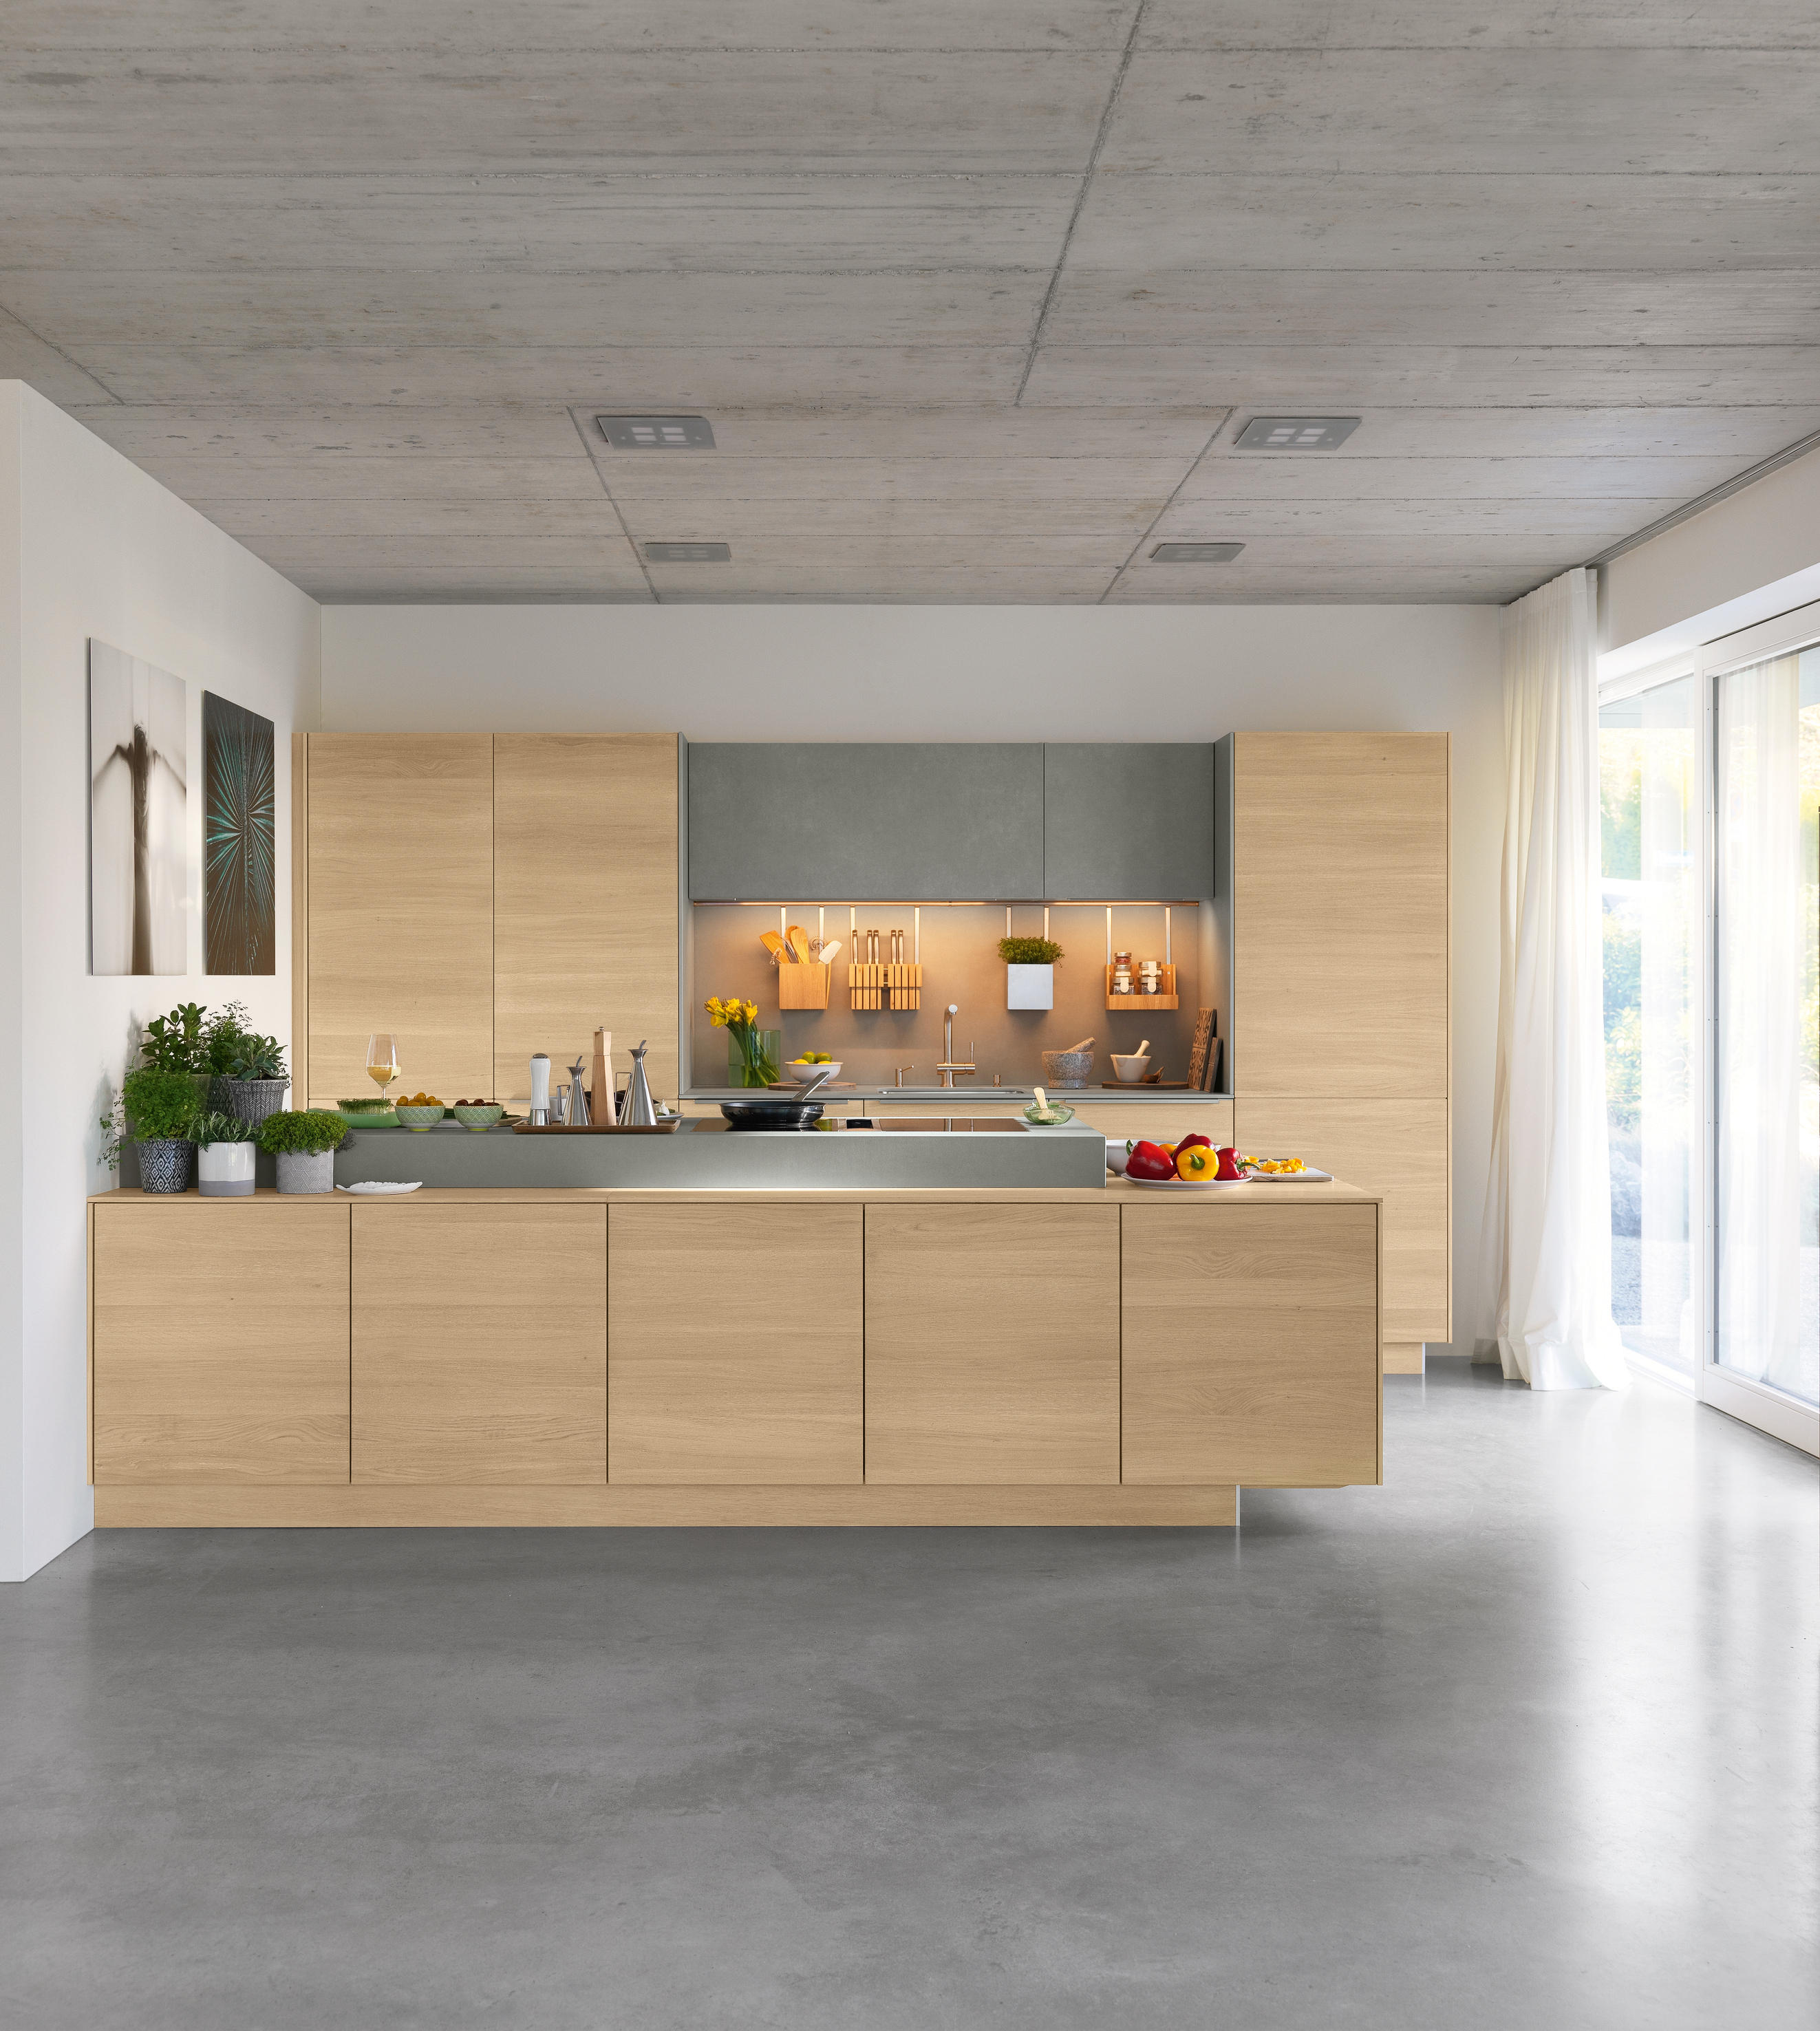 Küche team 7  FILIGNO KITCHEN - Fitted kitchens from TEAM 7 | Architonic